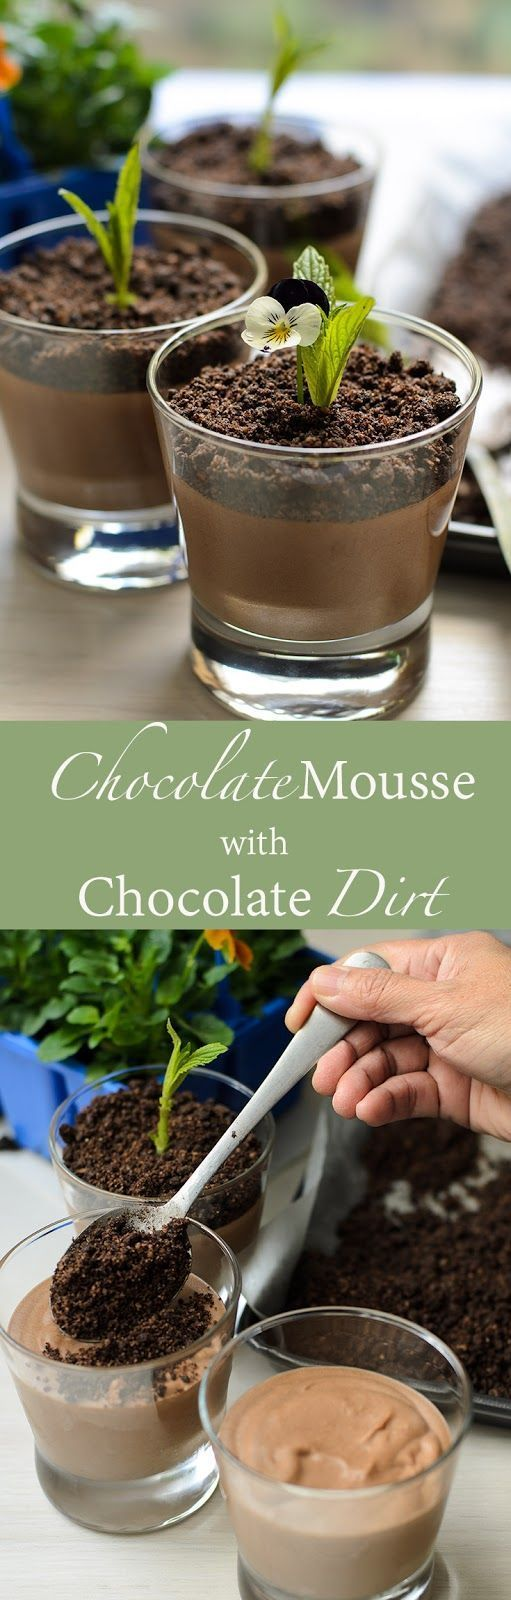 Chocolate Mousse with Chocolate Dirt